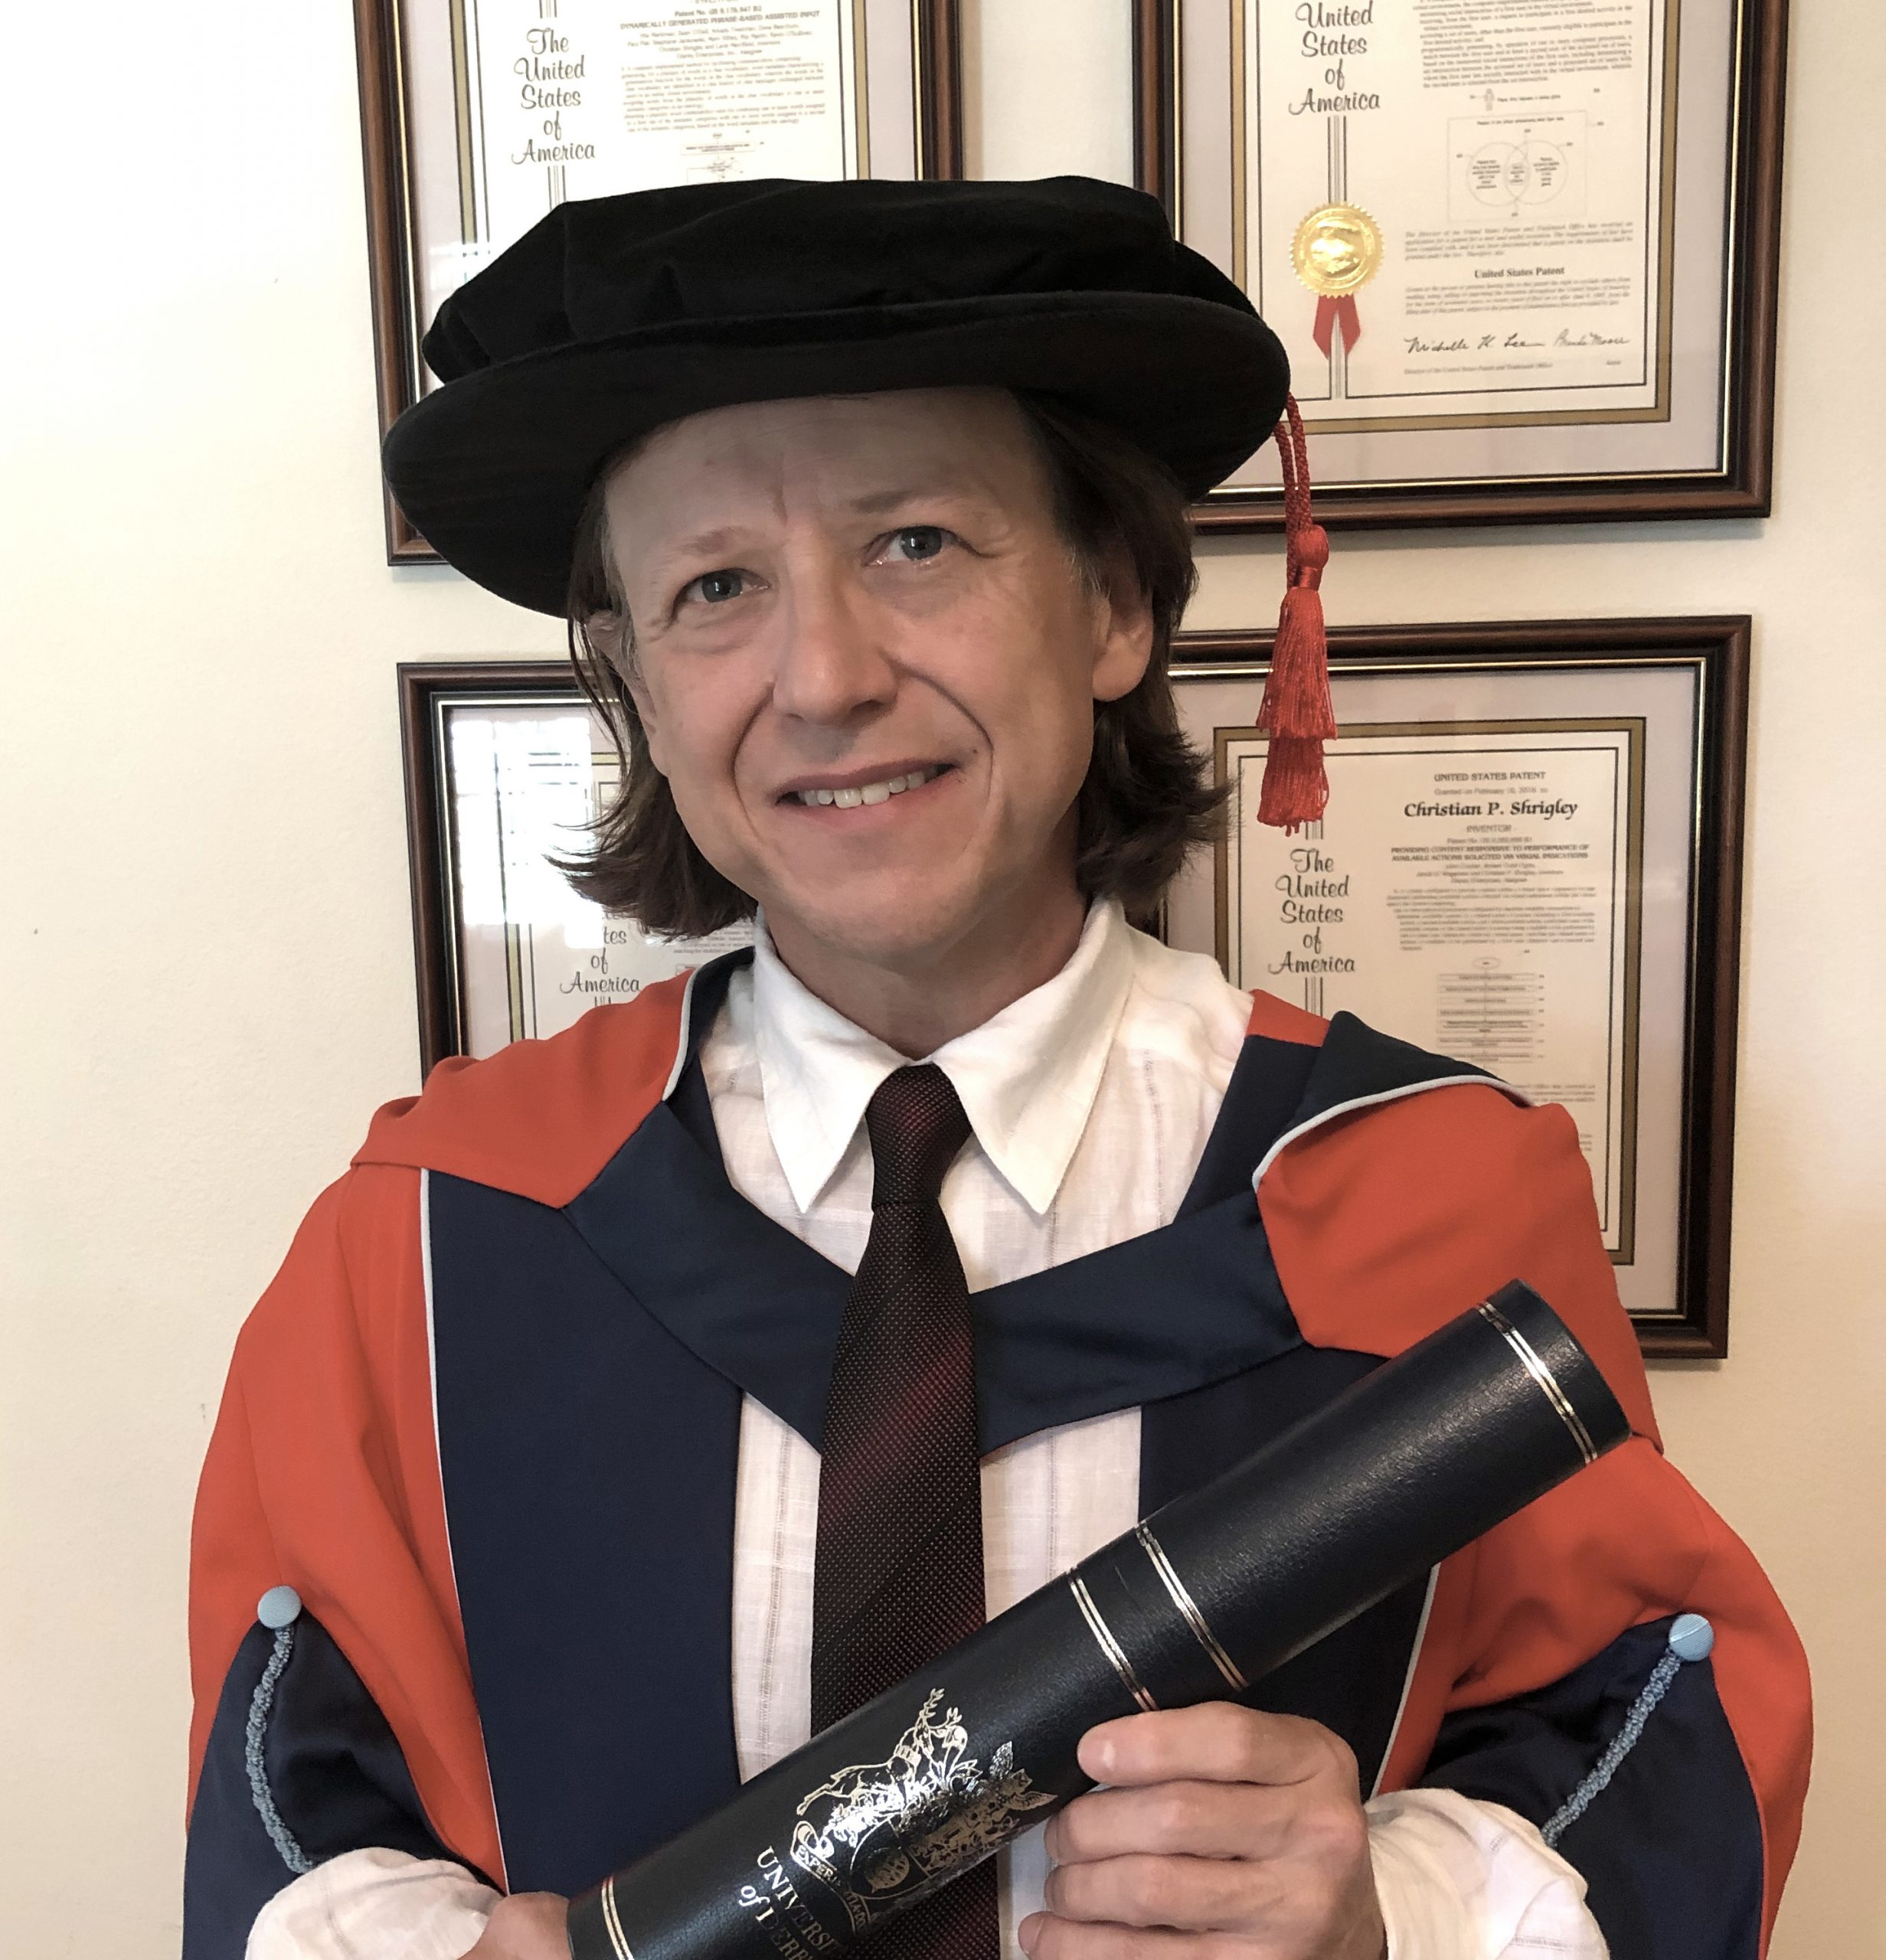 Chris Shrigley Honorary Doctorate